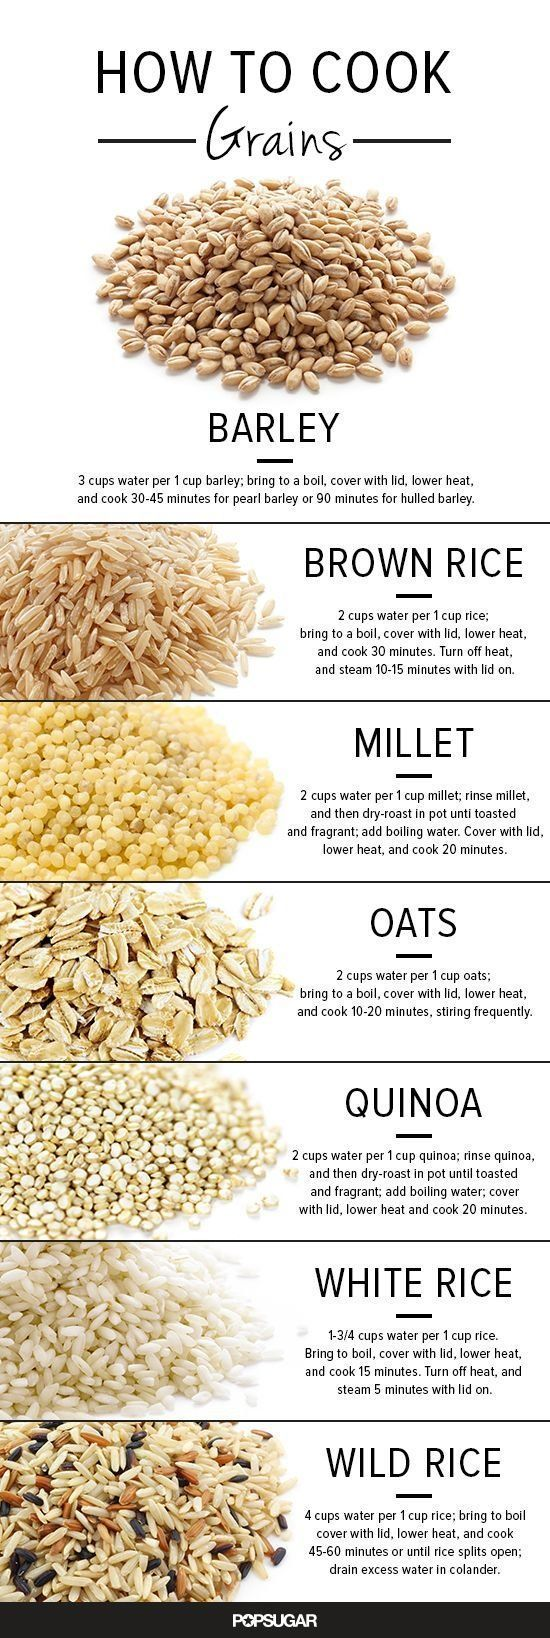 small resolution of brown rice provides superior nutrition value over white rice